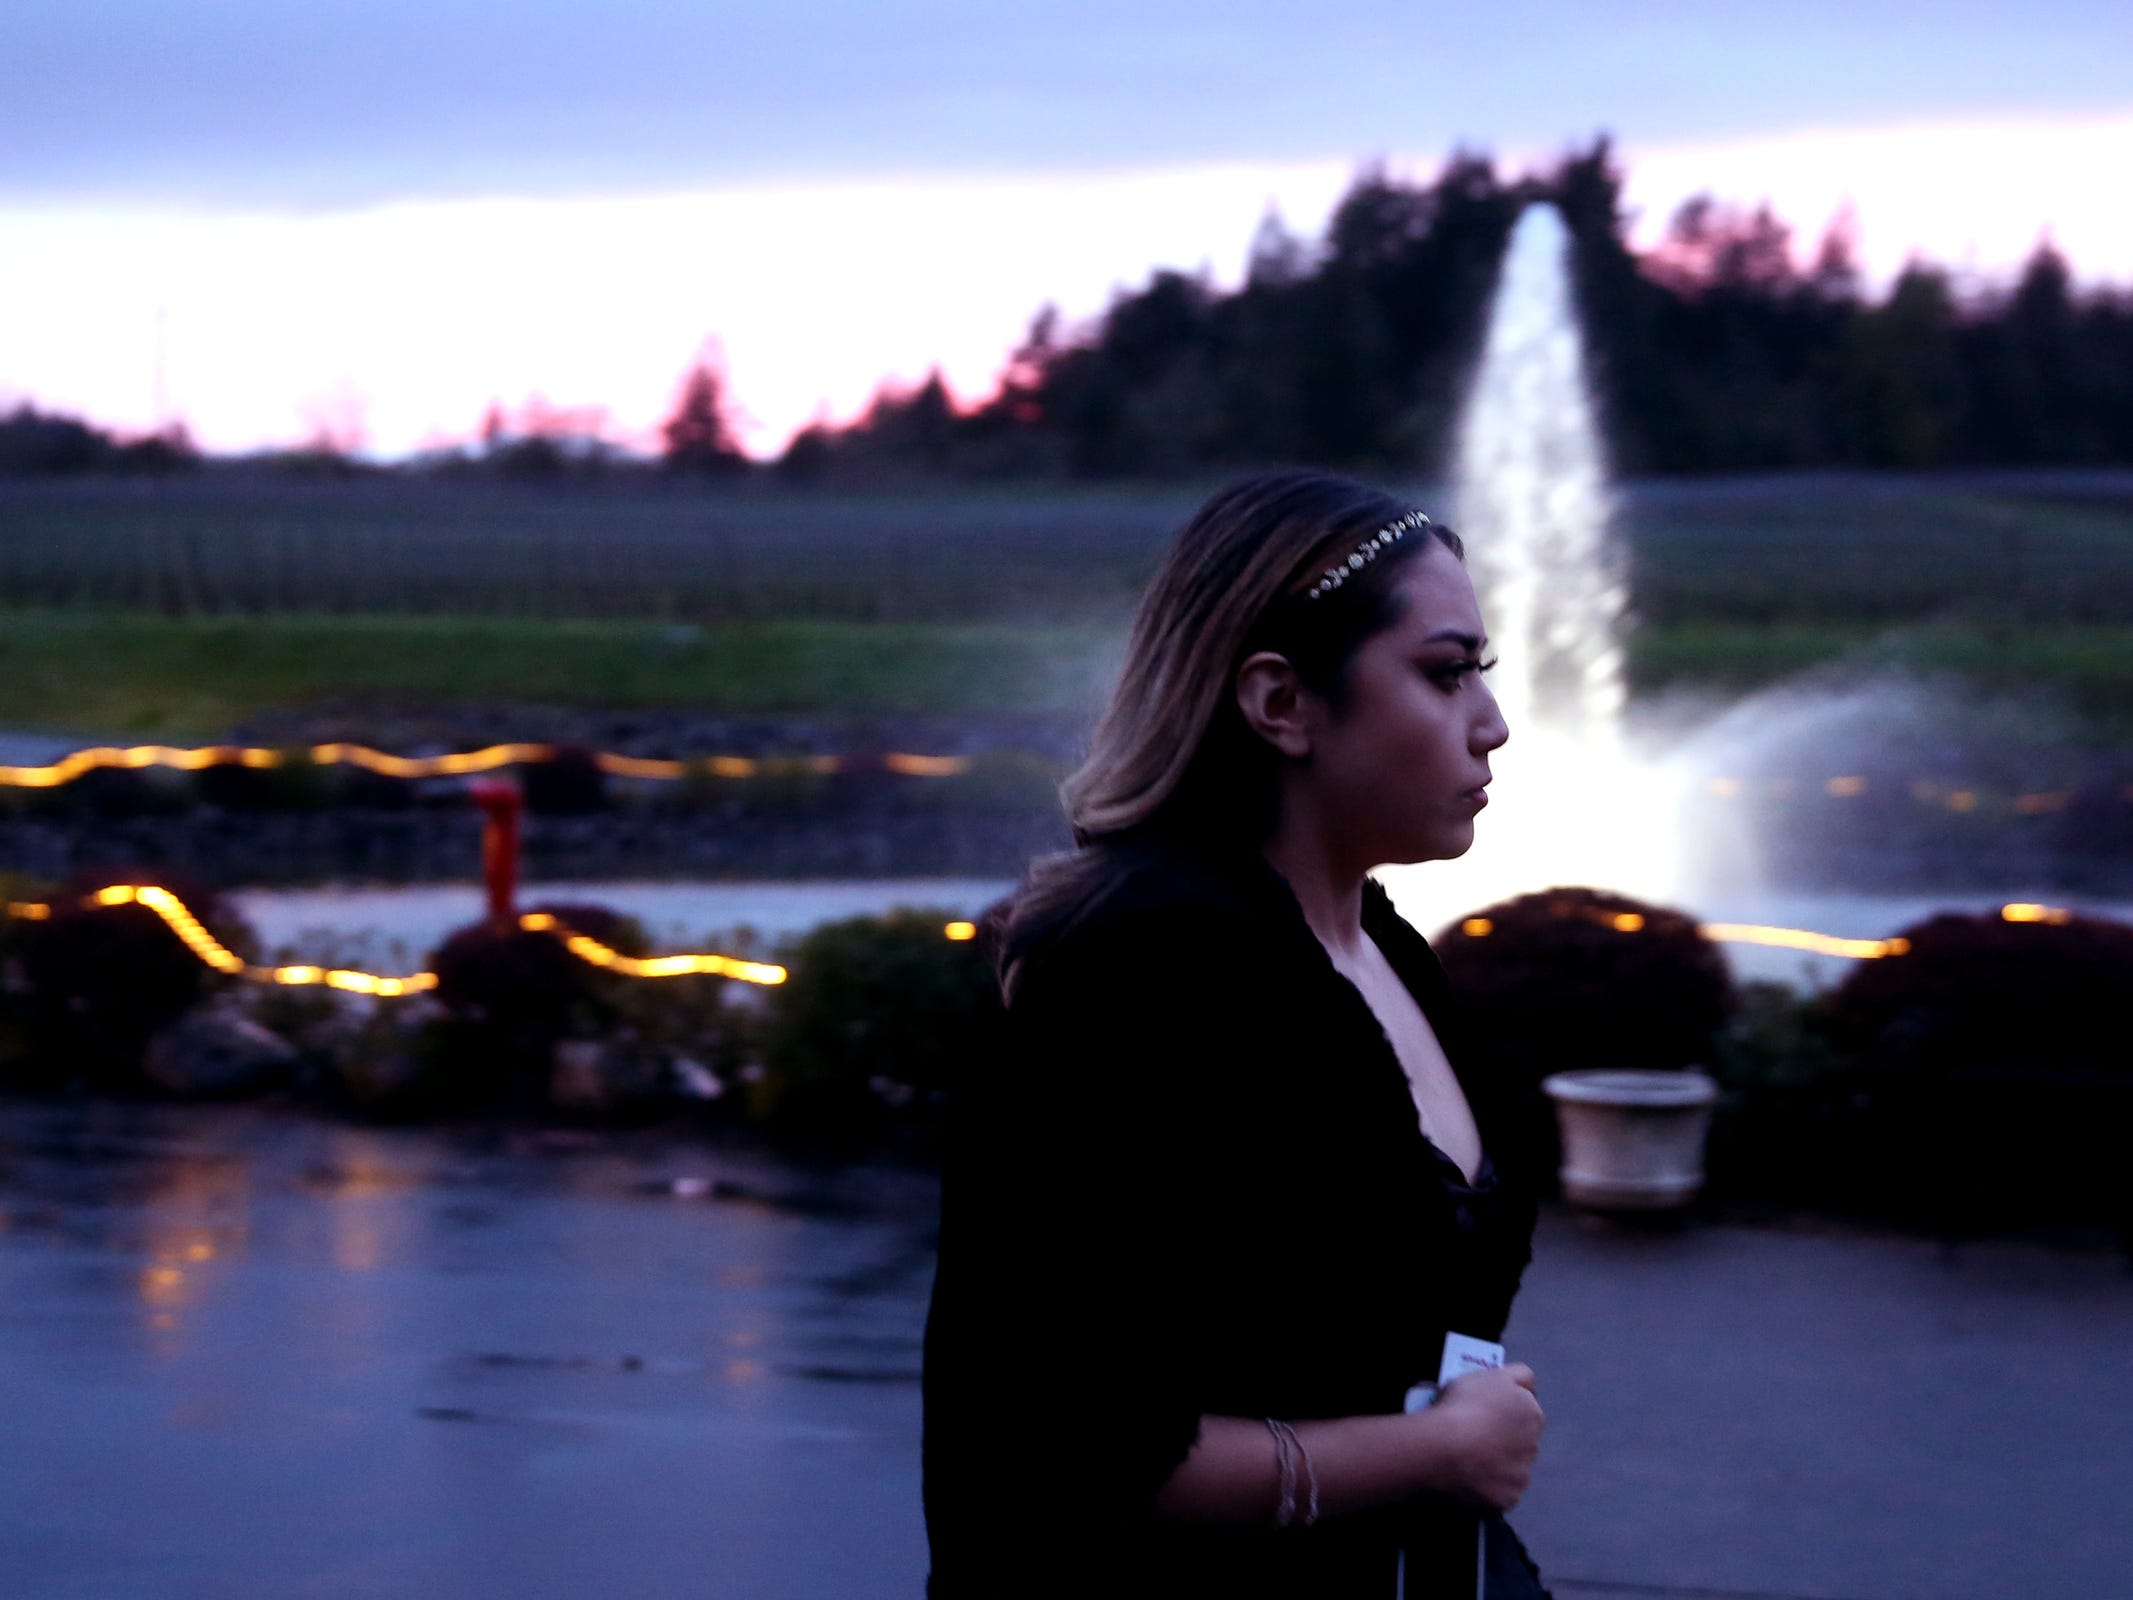 A student arrives for the South Salem High School prom at Zenith Vineyard in West Salem on April 13, 2019.